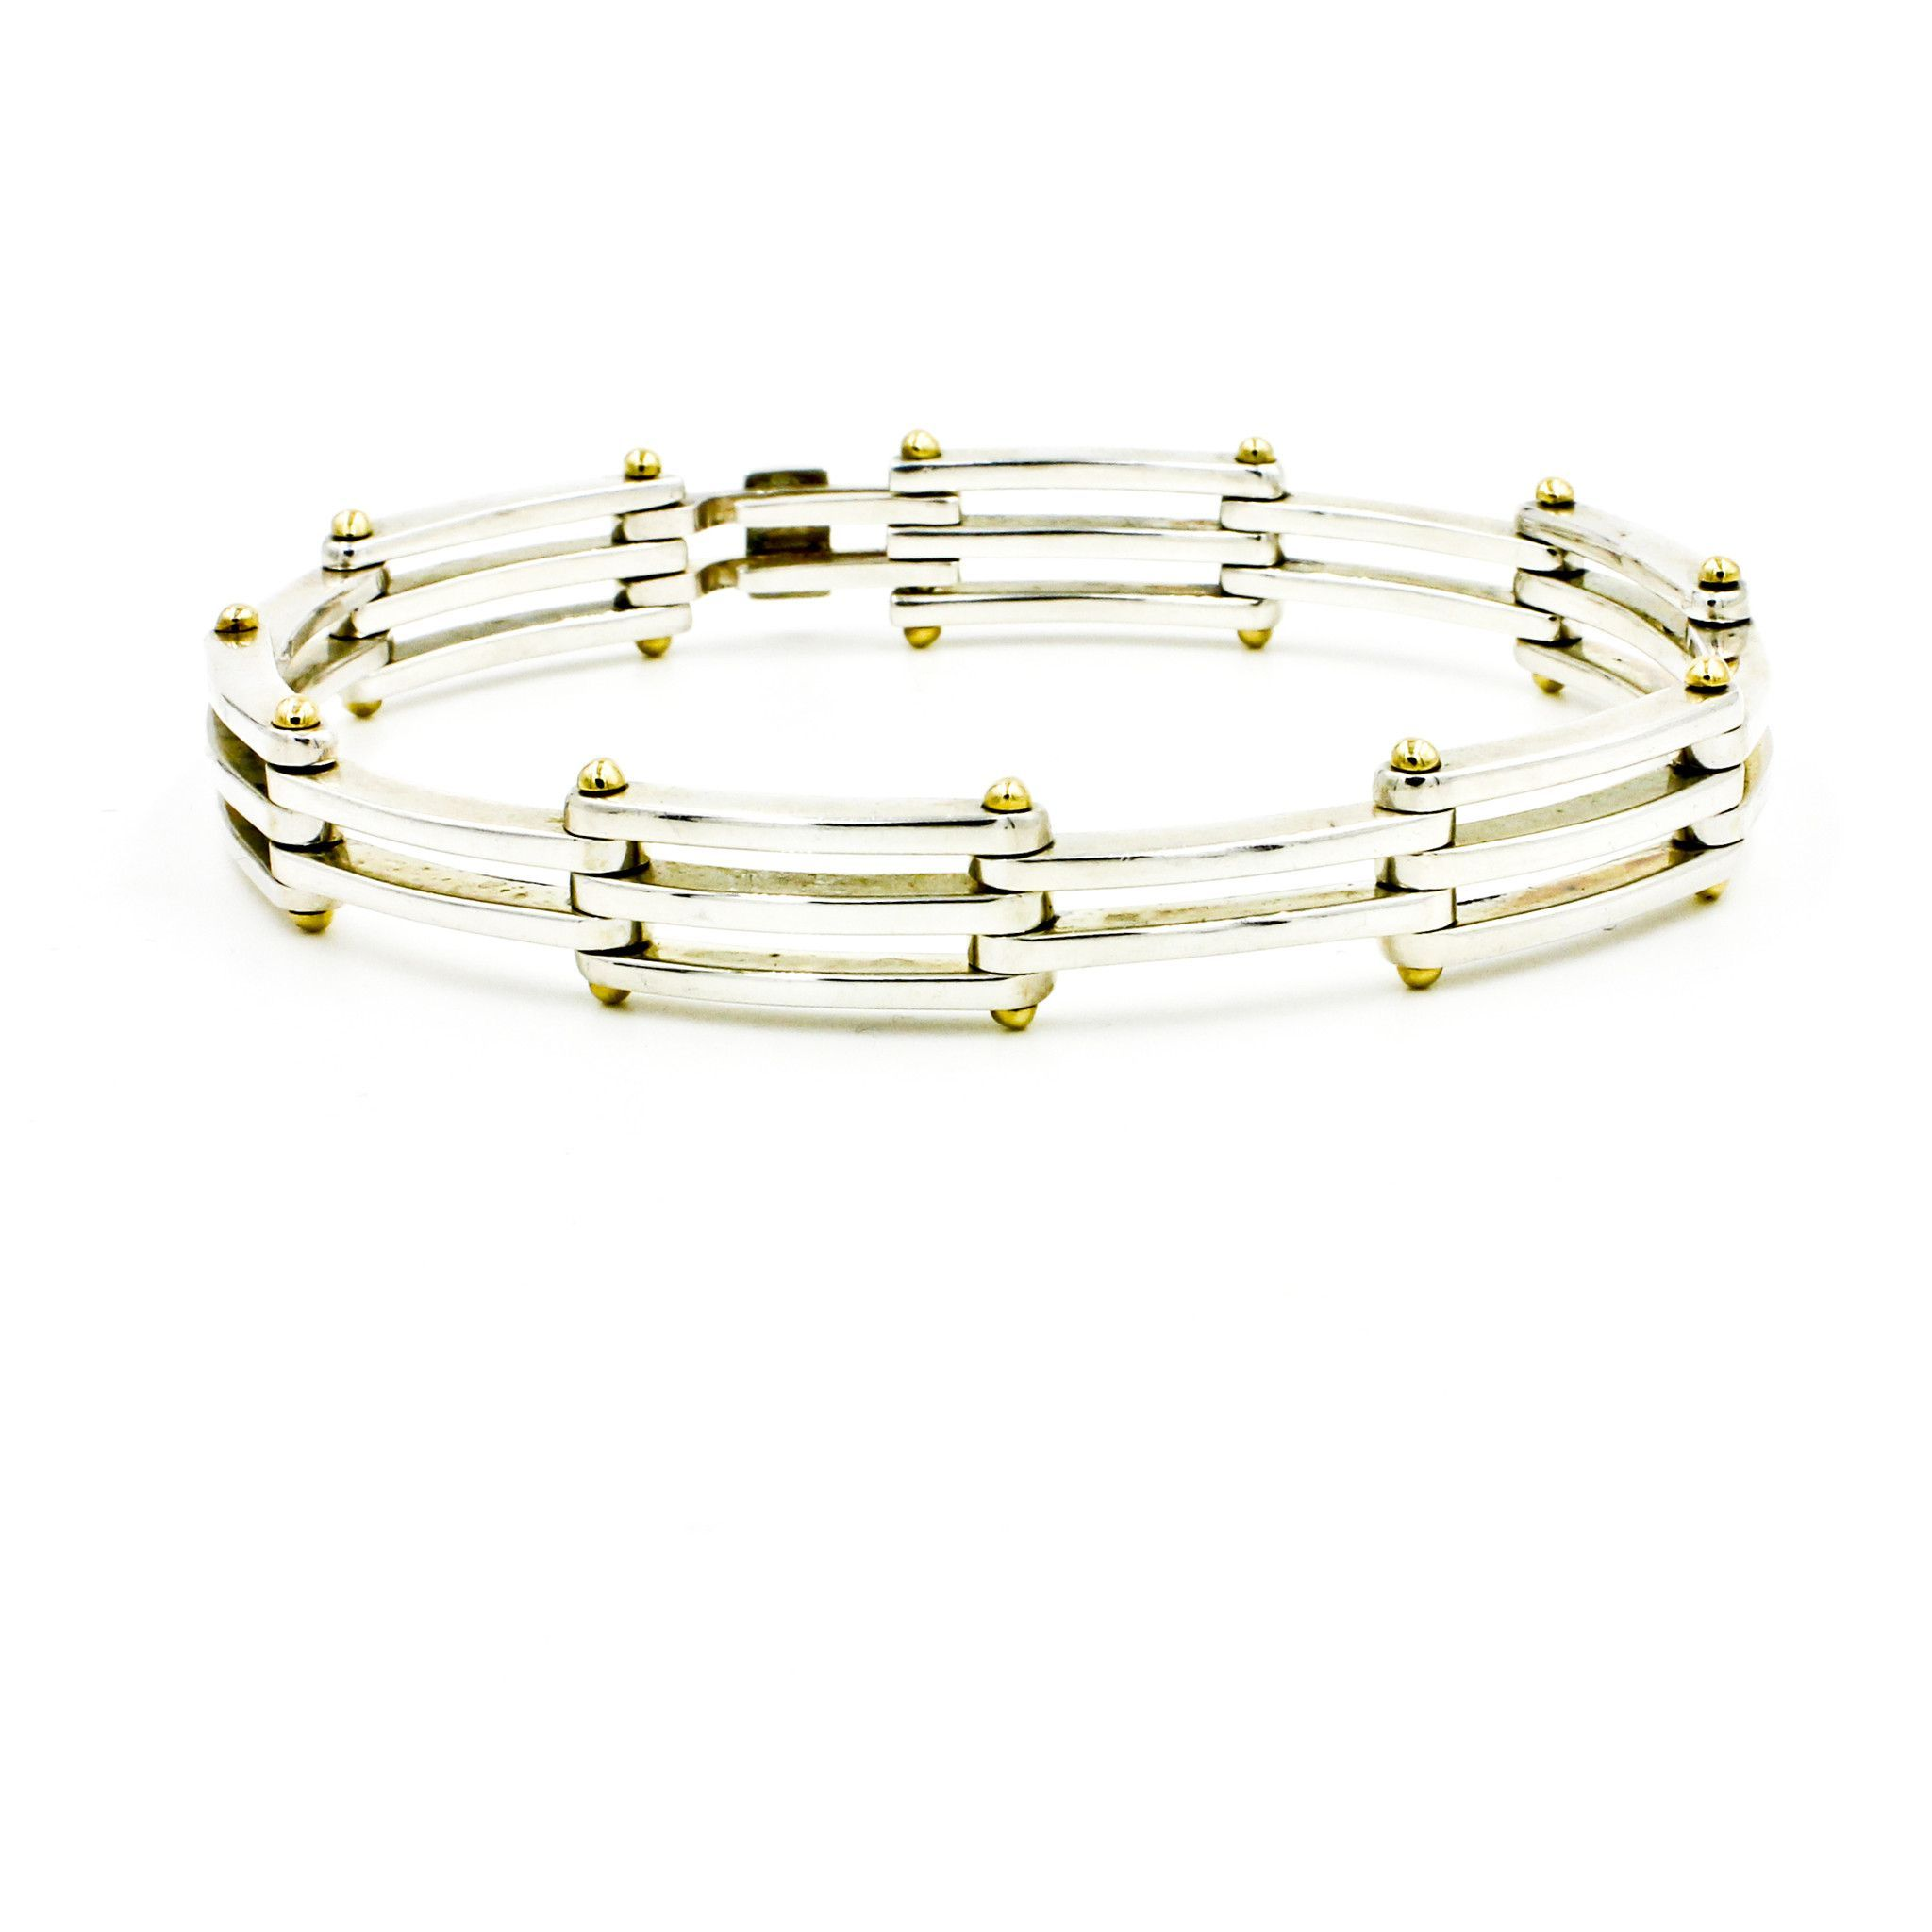 9731f82a3 Tiffany & Co. Gatelink Bracelet in 925 Sterling Silver and 18k Yellow Gold  Length 8